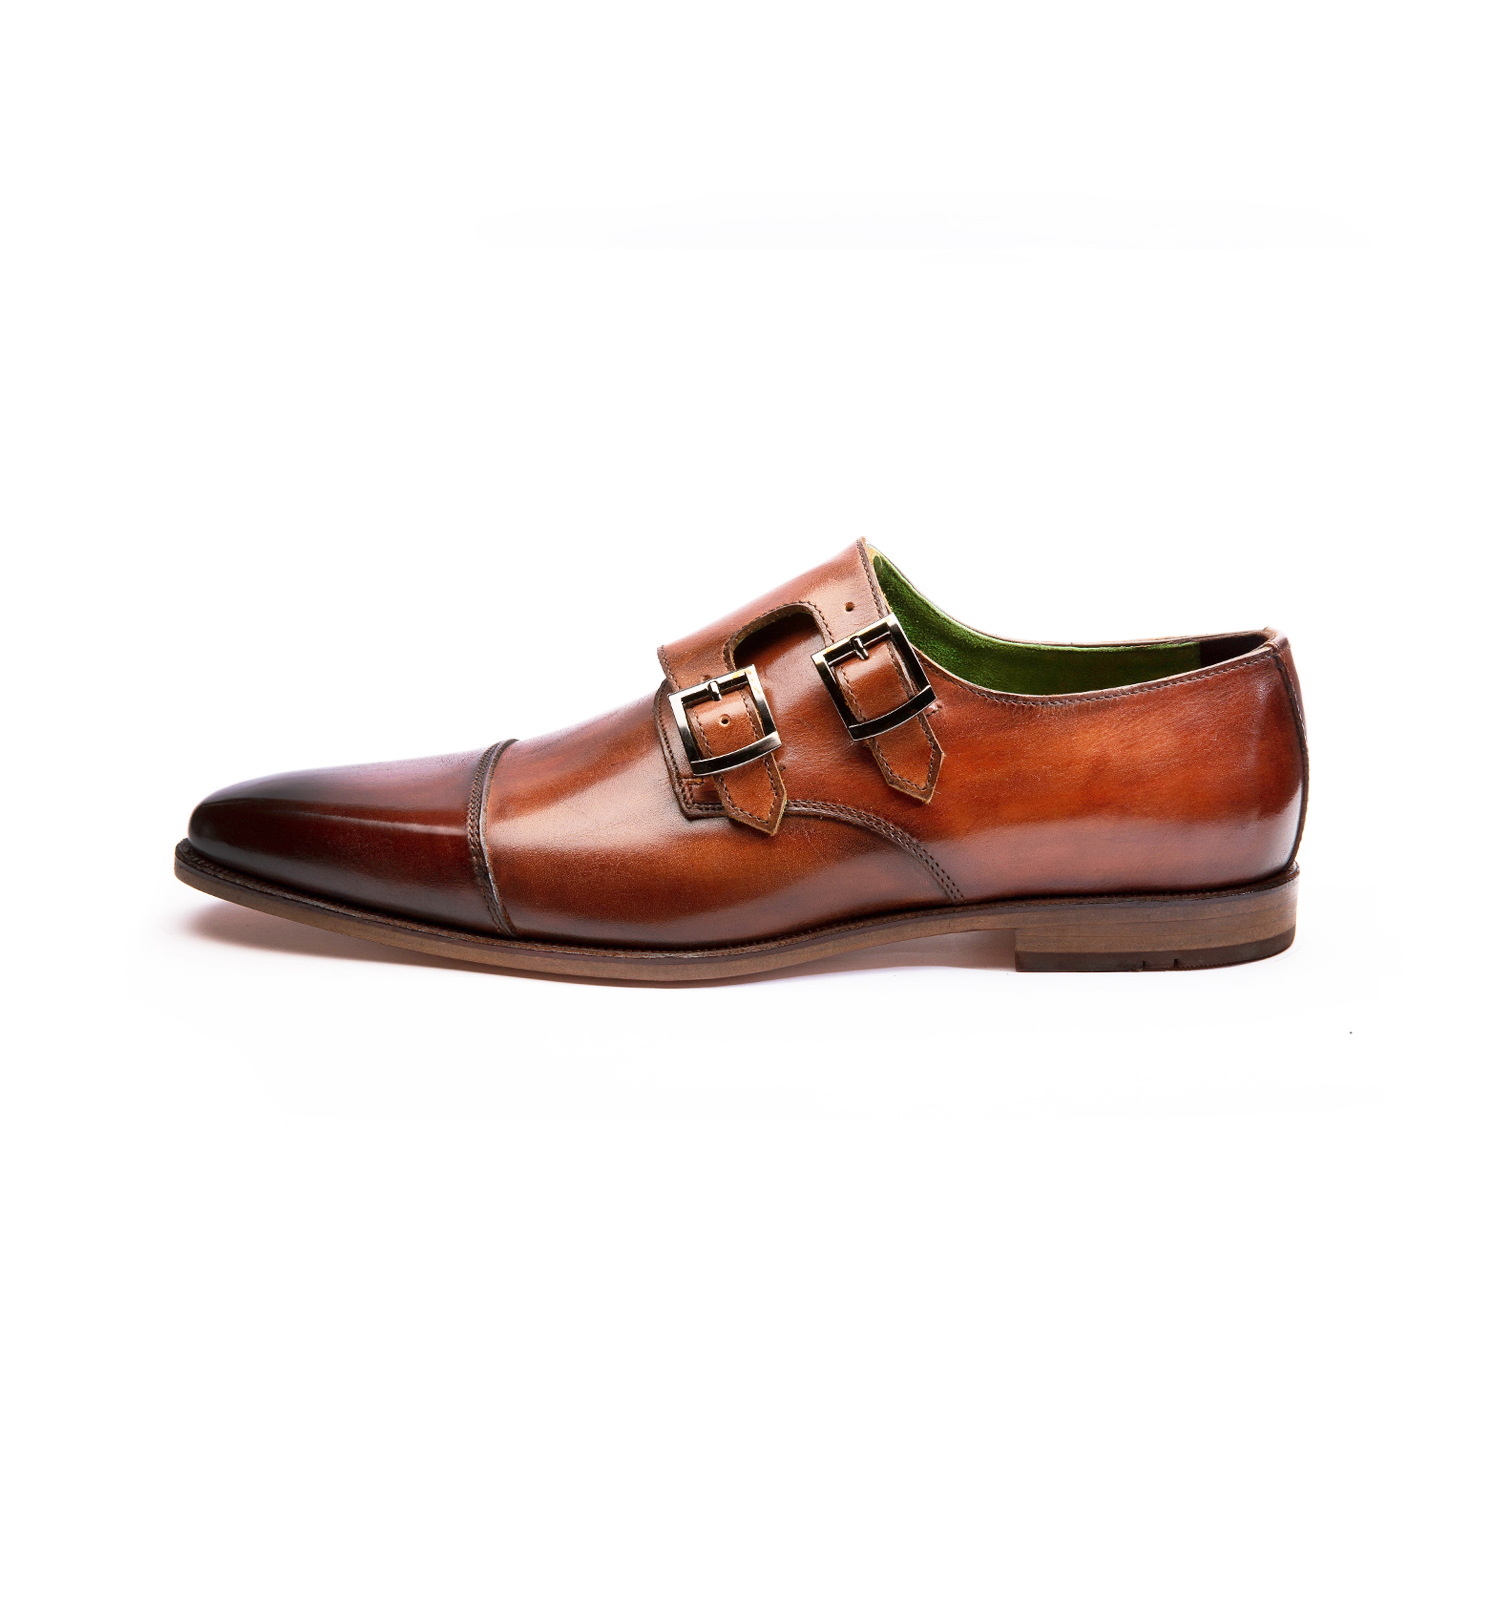 Luxury Handcrafted Patina Shoes by iTailor